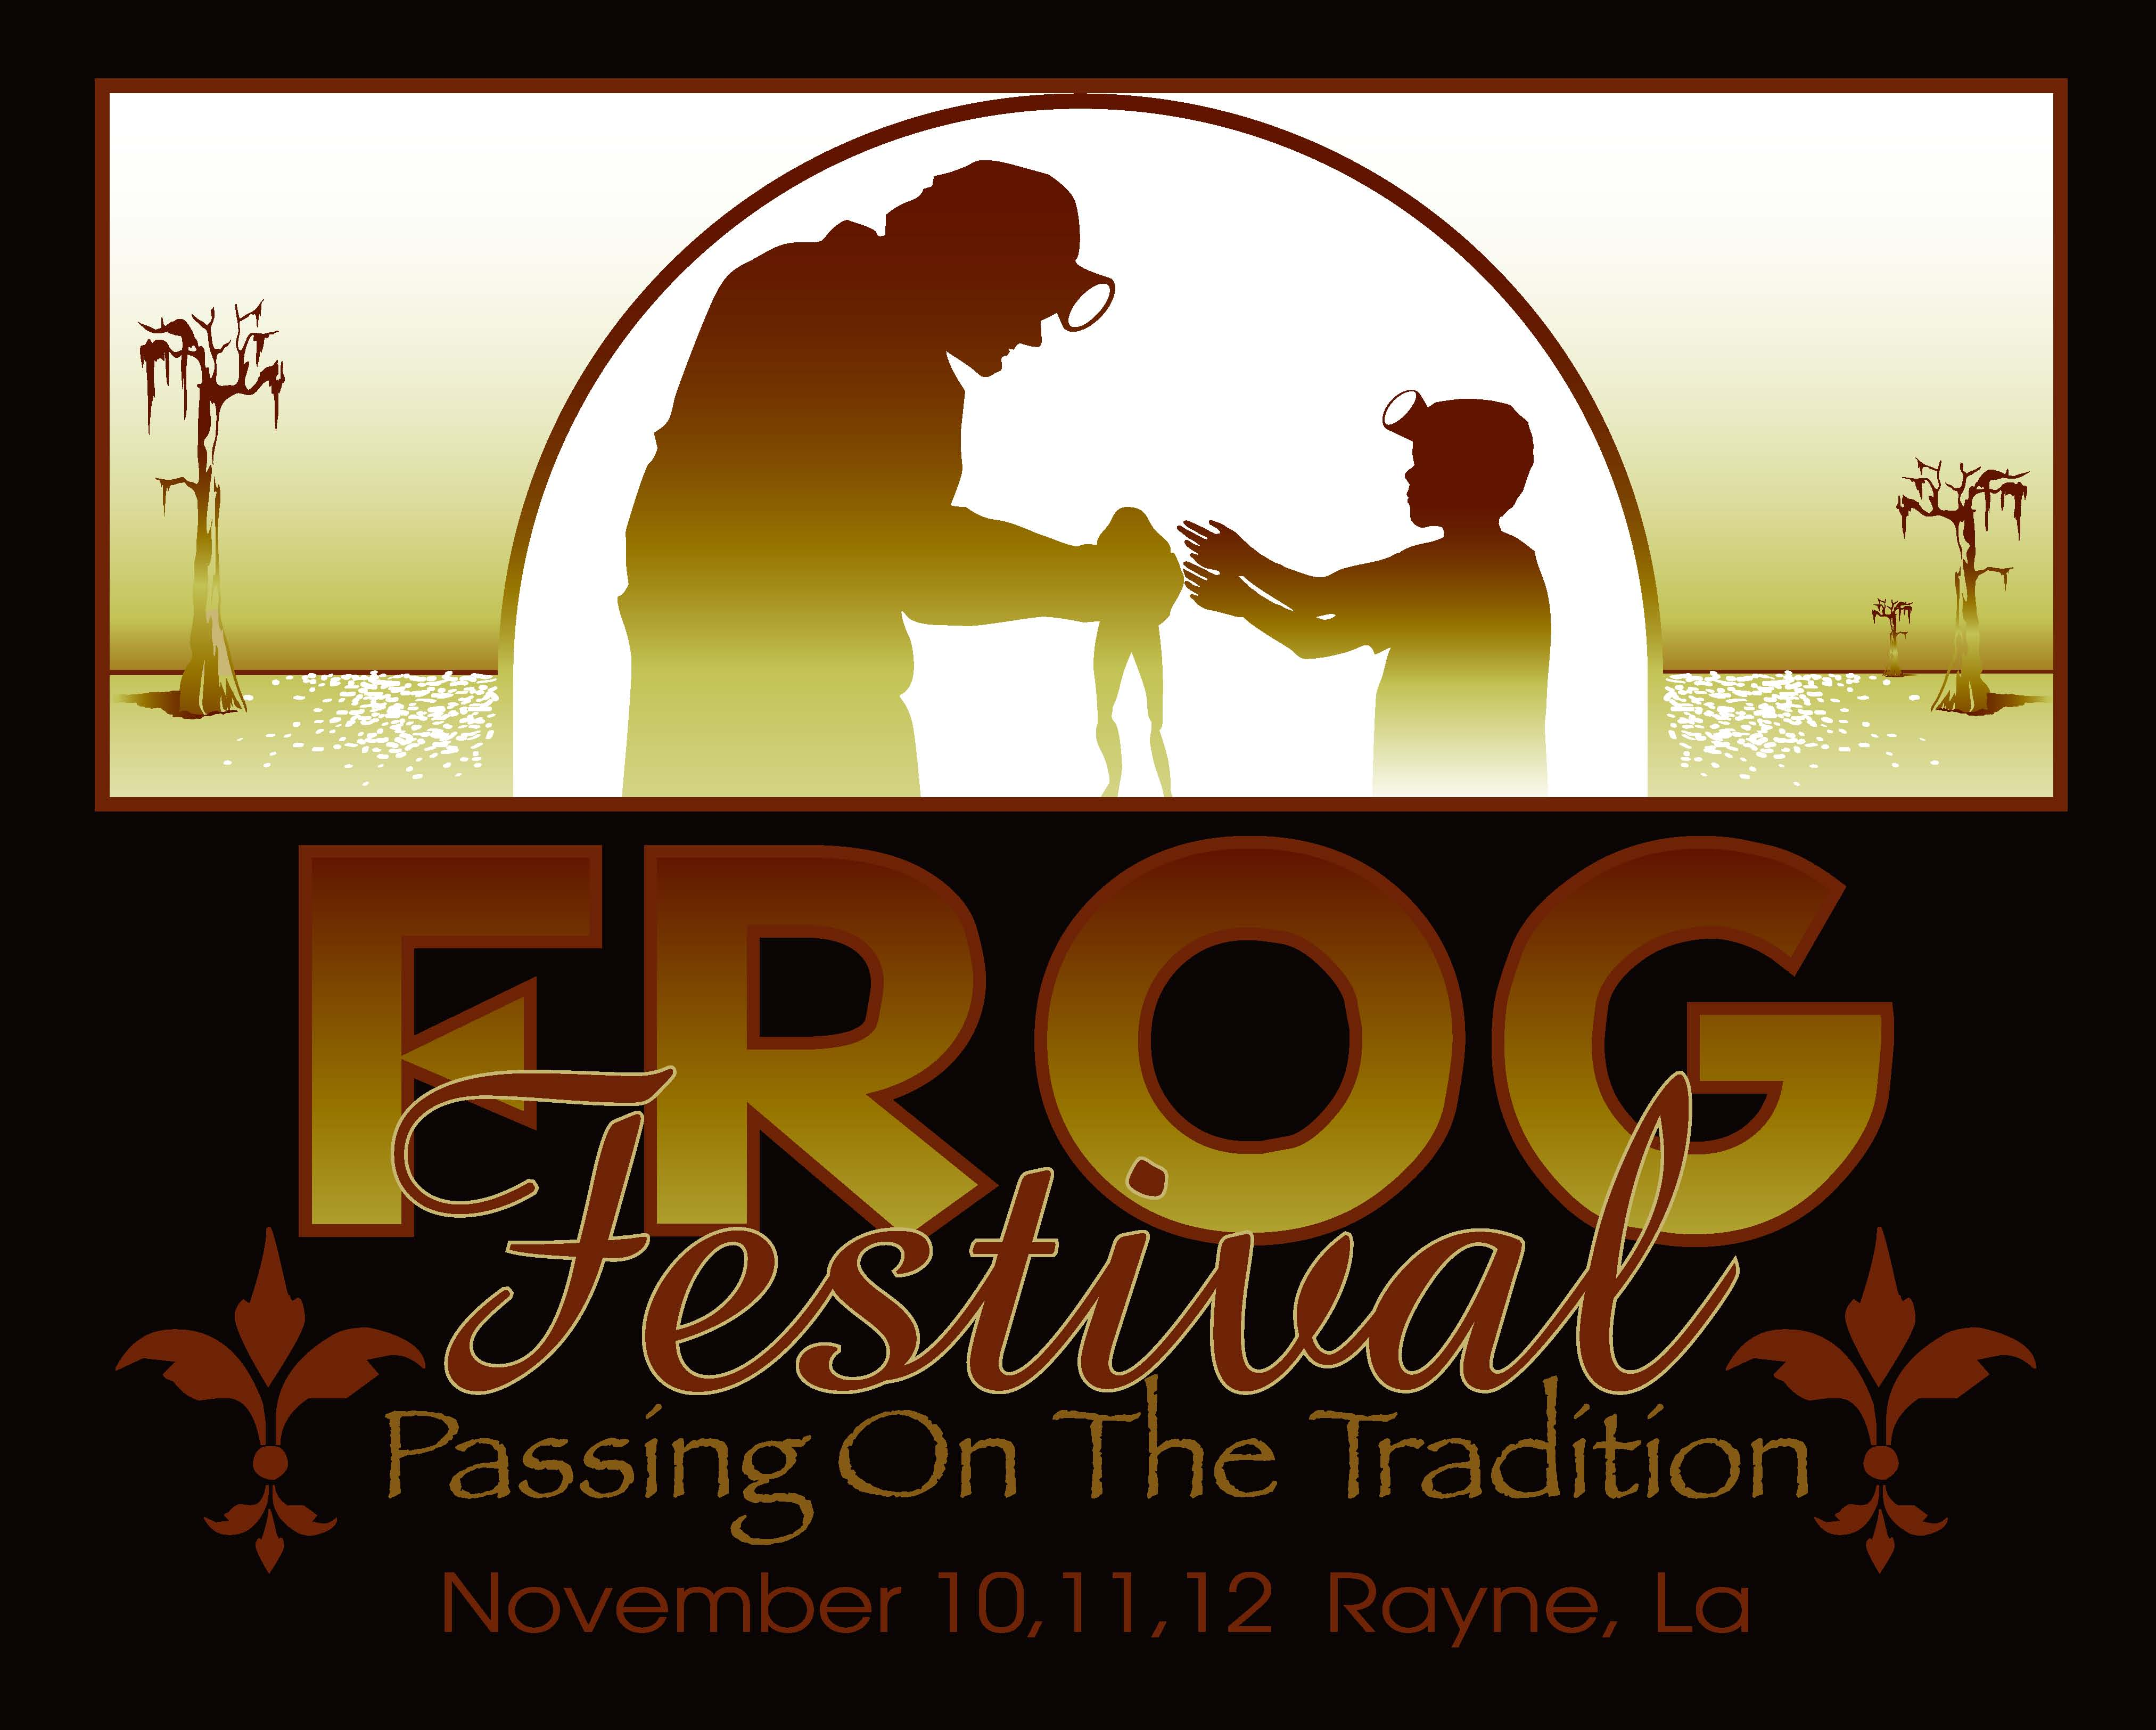 Frog city casino rayne la